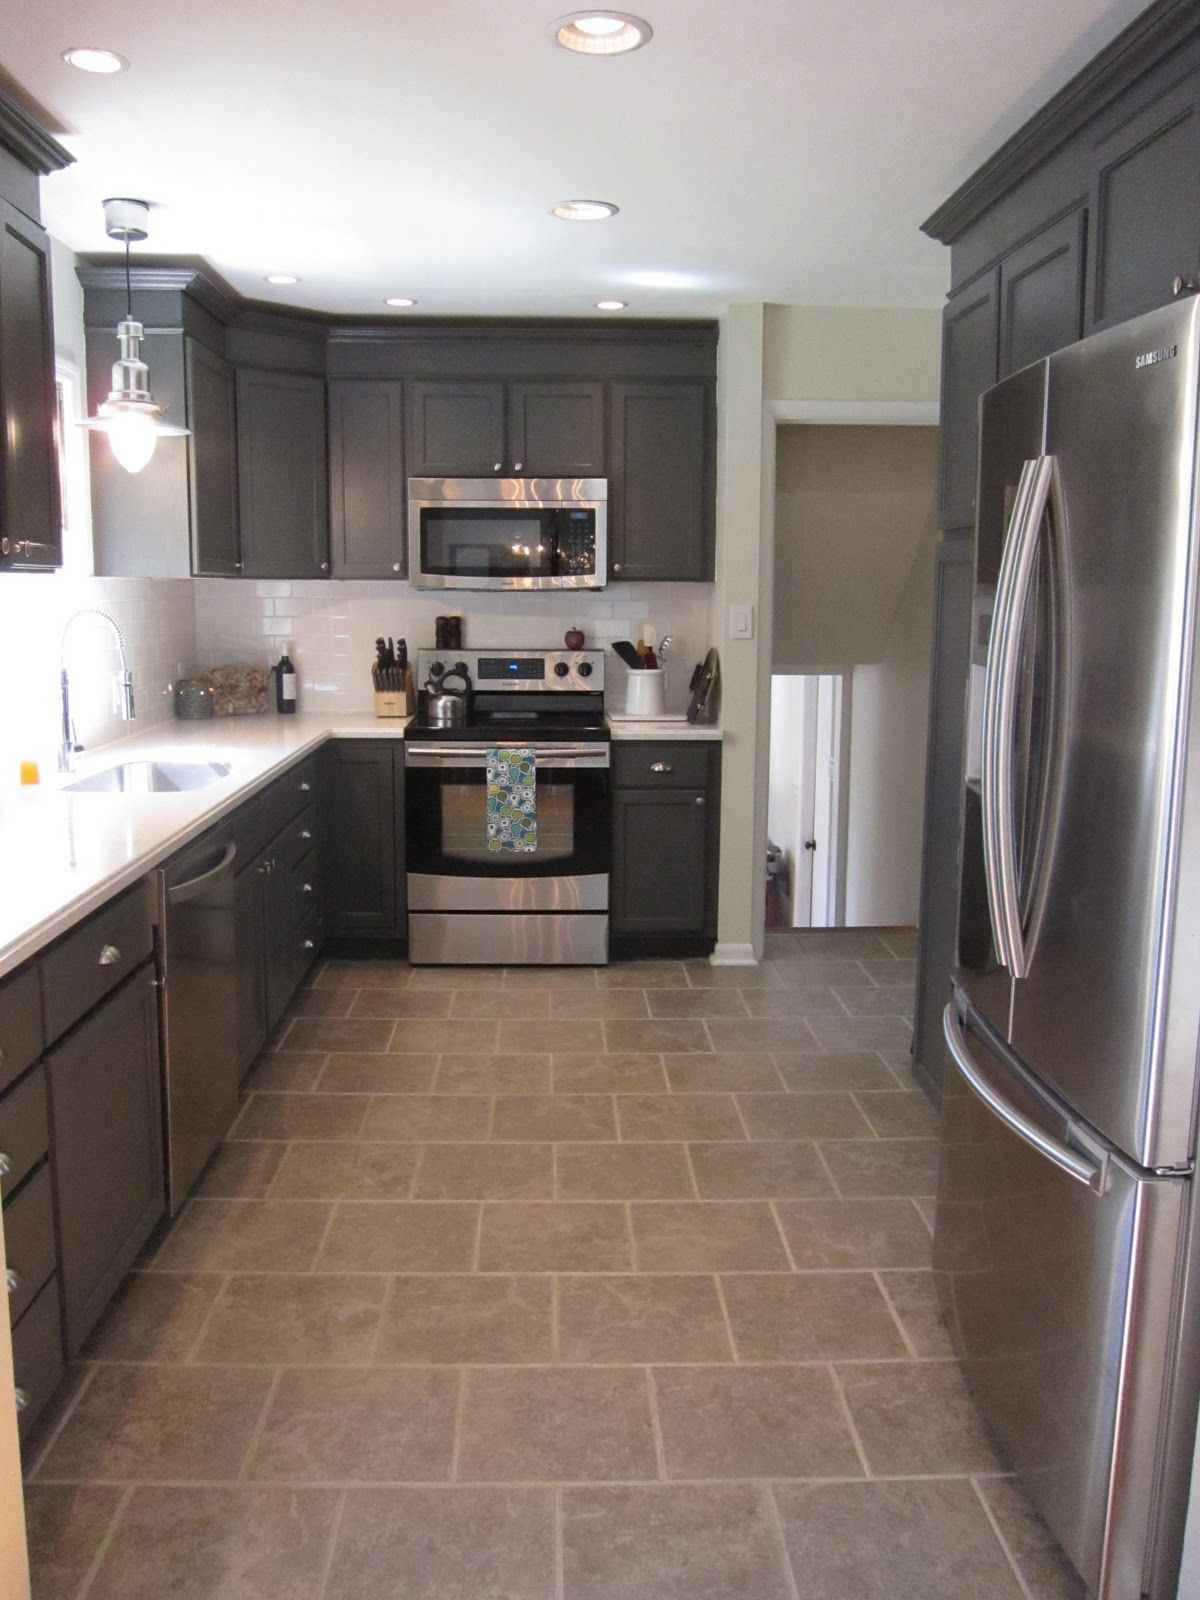 White Cabinets Kitchen Tile Floor Kitchen Redo With Dark Gray Cabinets & White Subway Tile  Gray